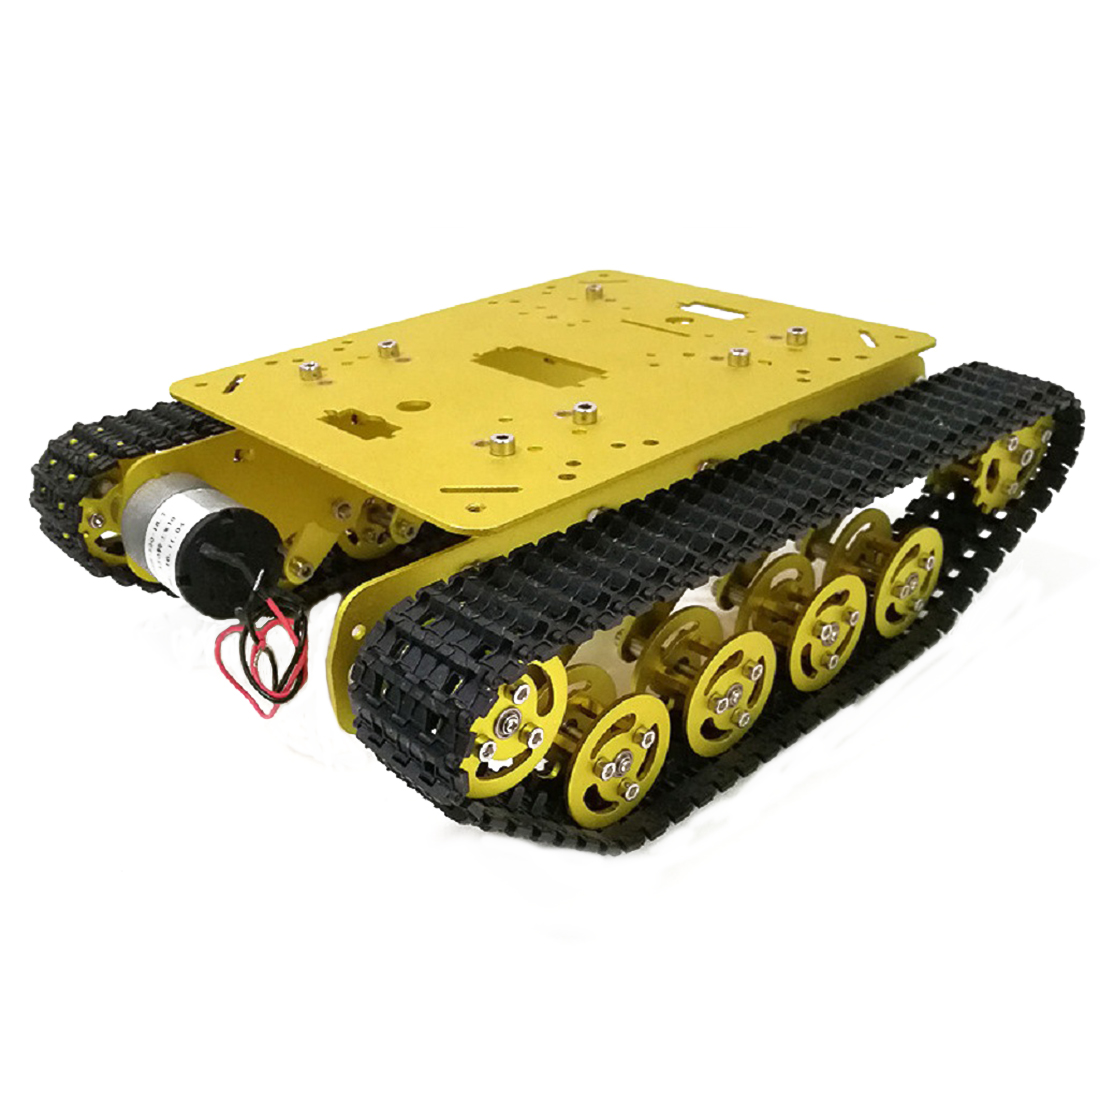 12V Arduino DIY Tracked Robot Smart Car Metal Tank Chassis Kit - Golden 2020 New Arrival